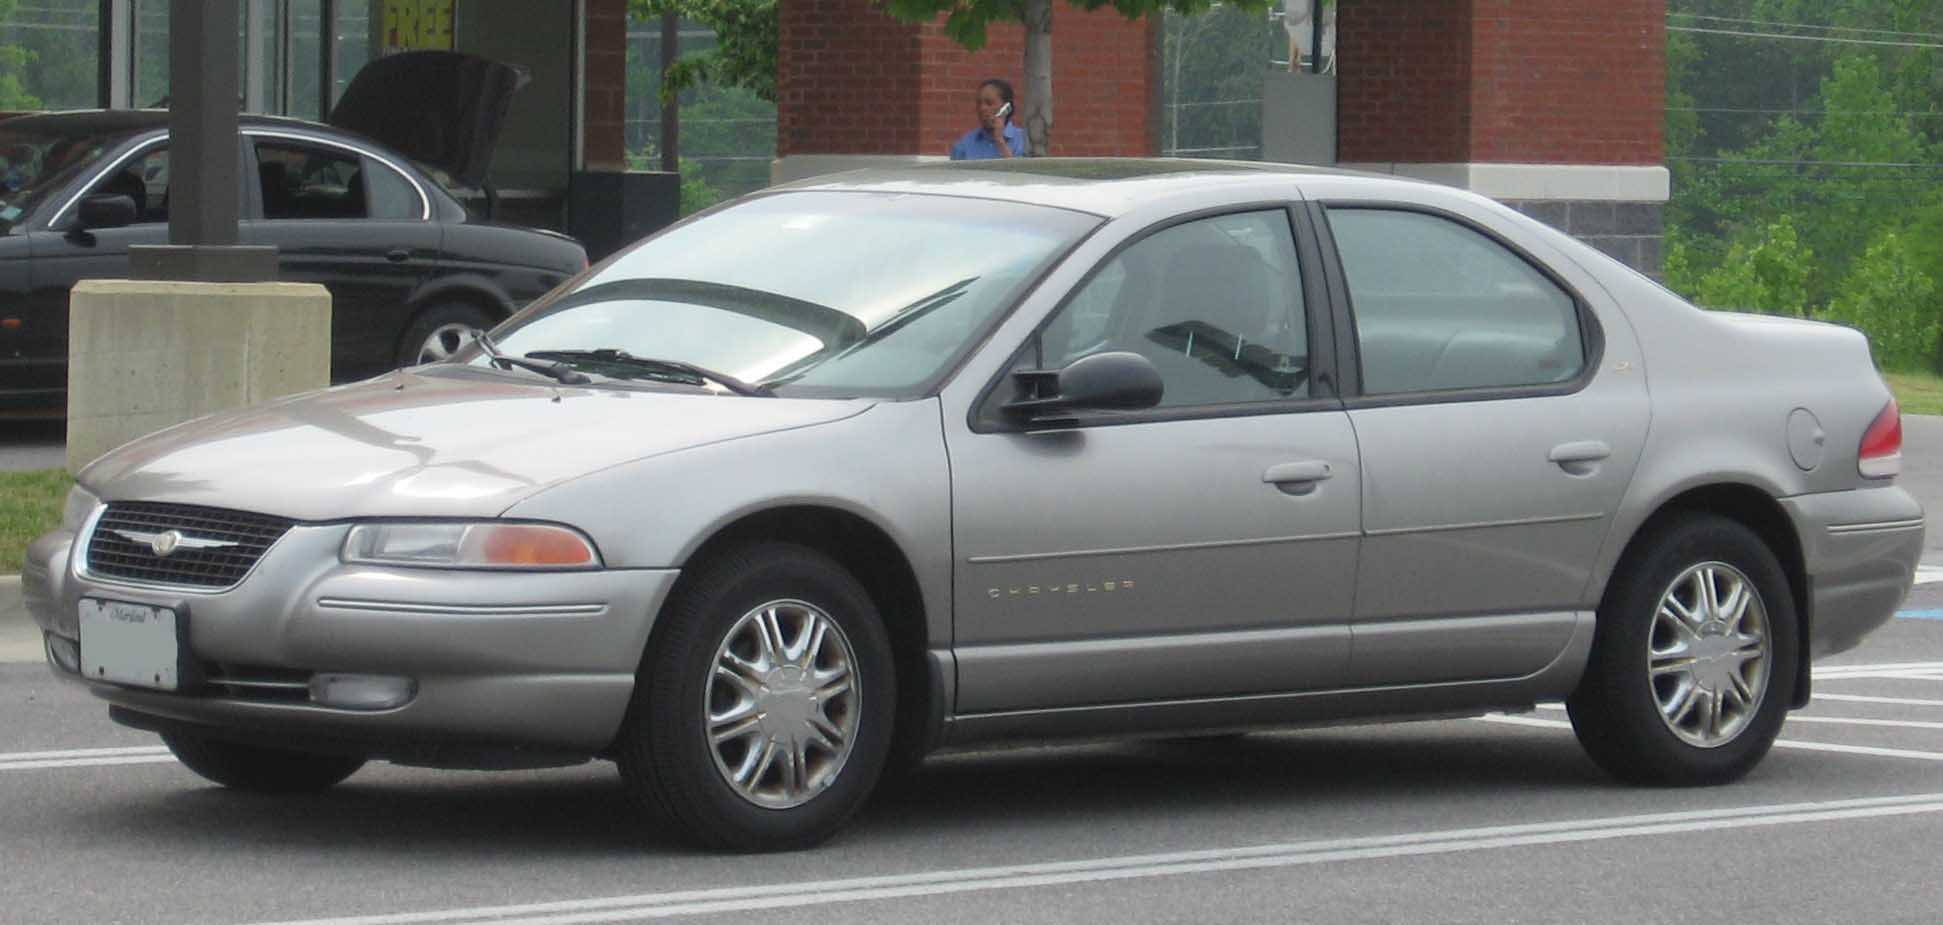 chrysler cirrus #2